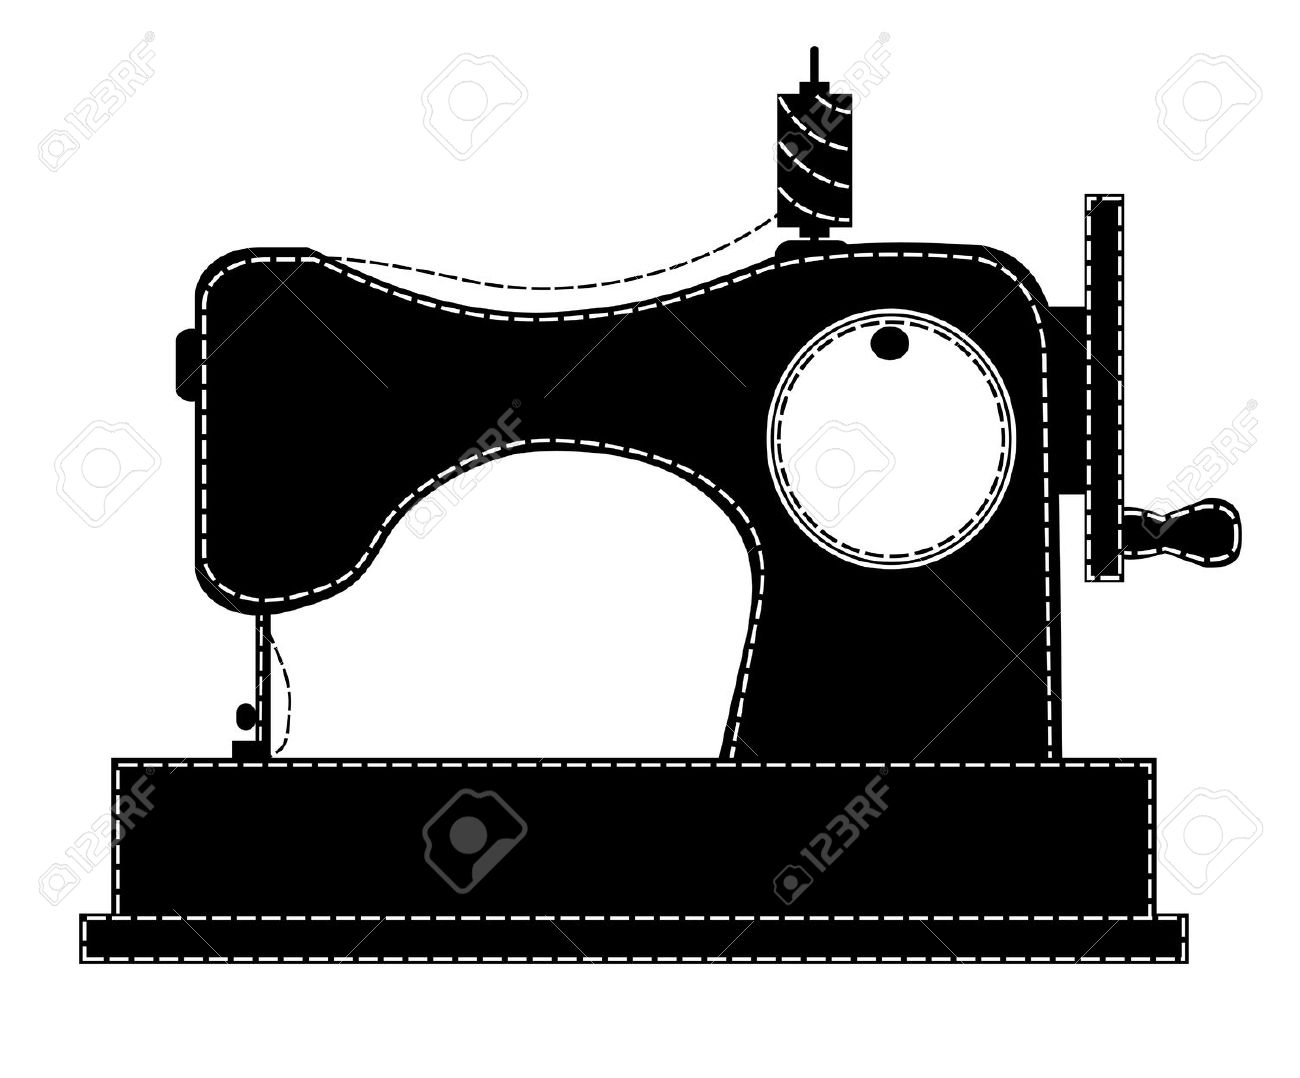 Sewing Machine clipart #8, Download drawings